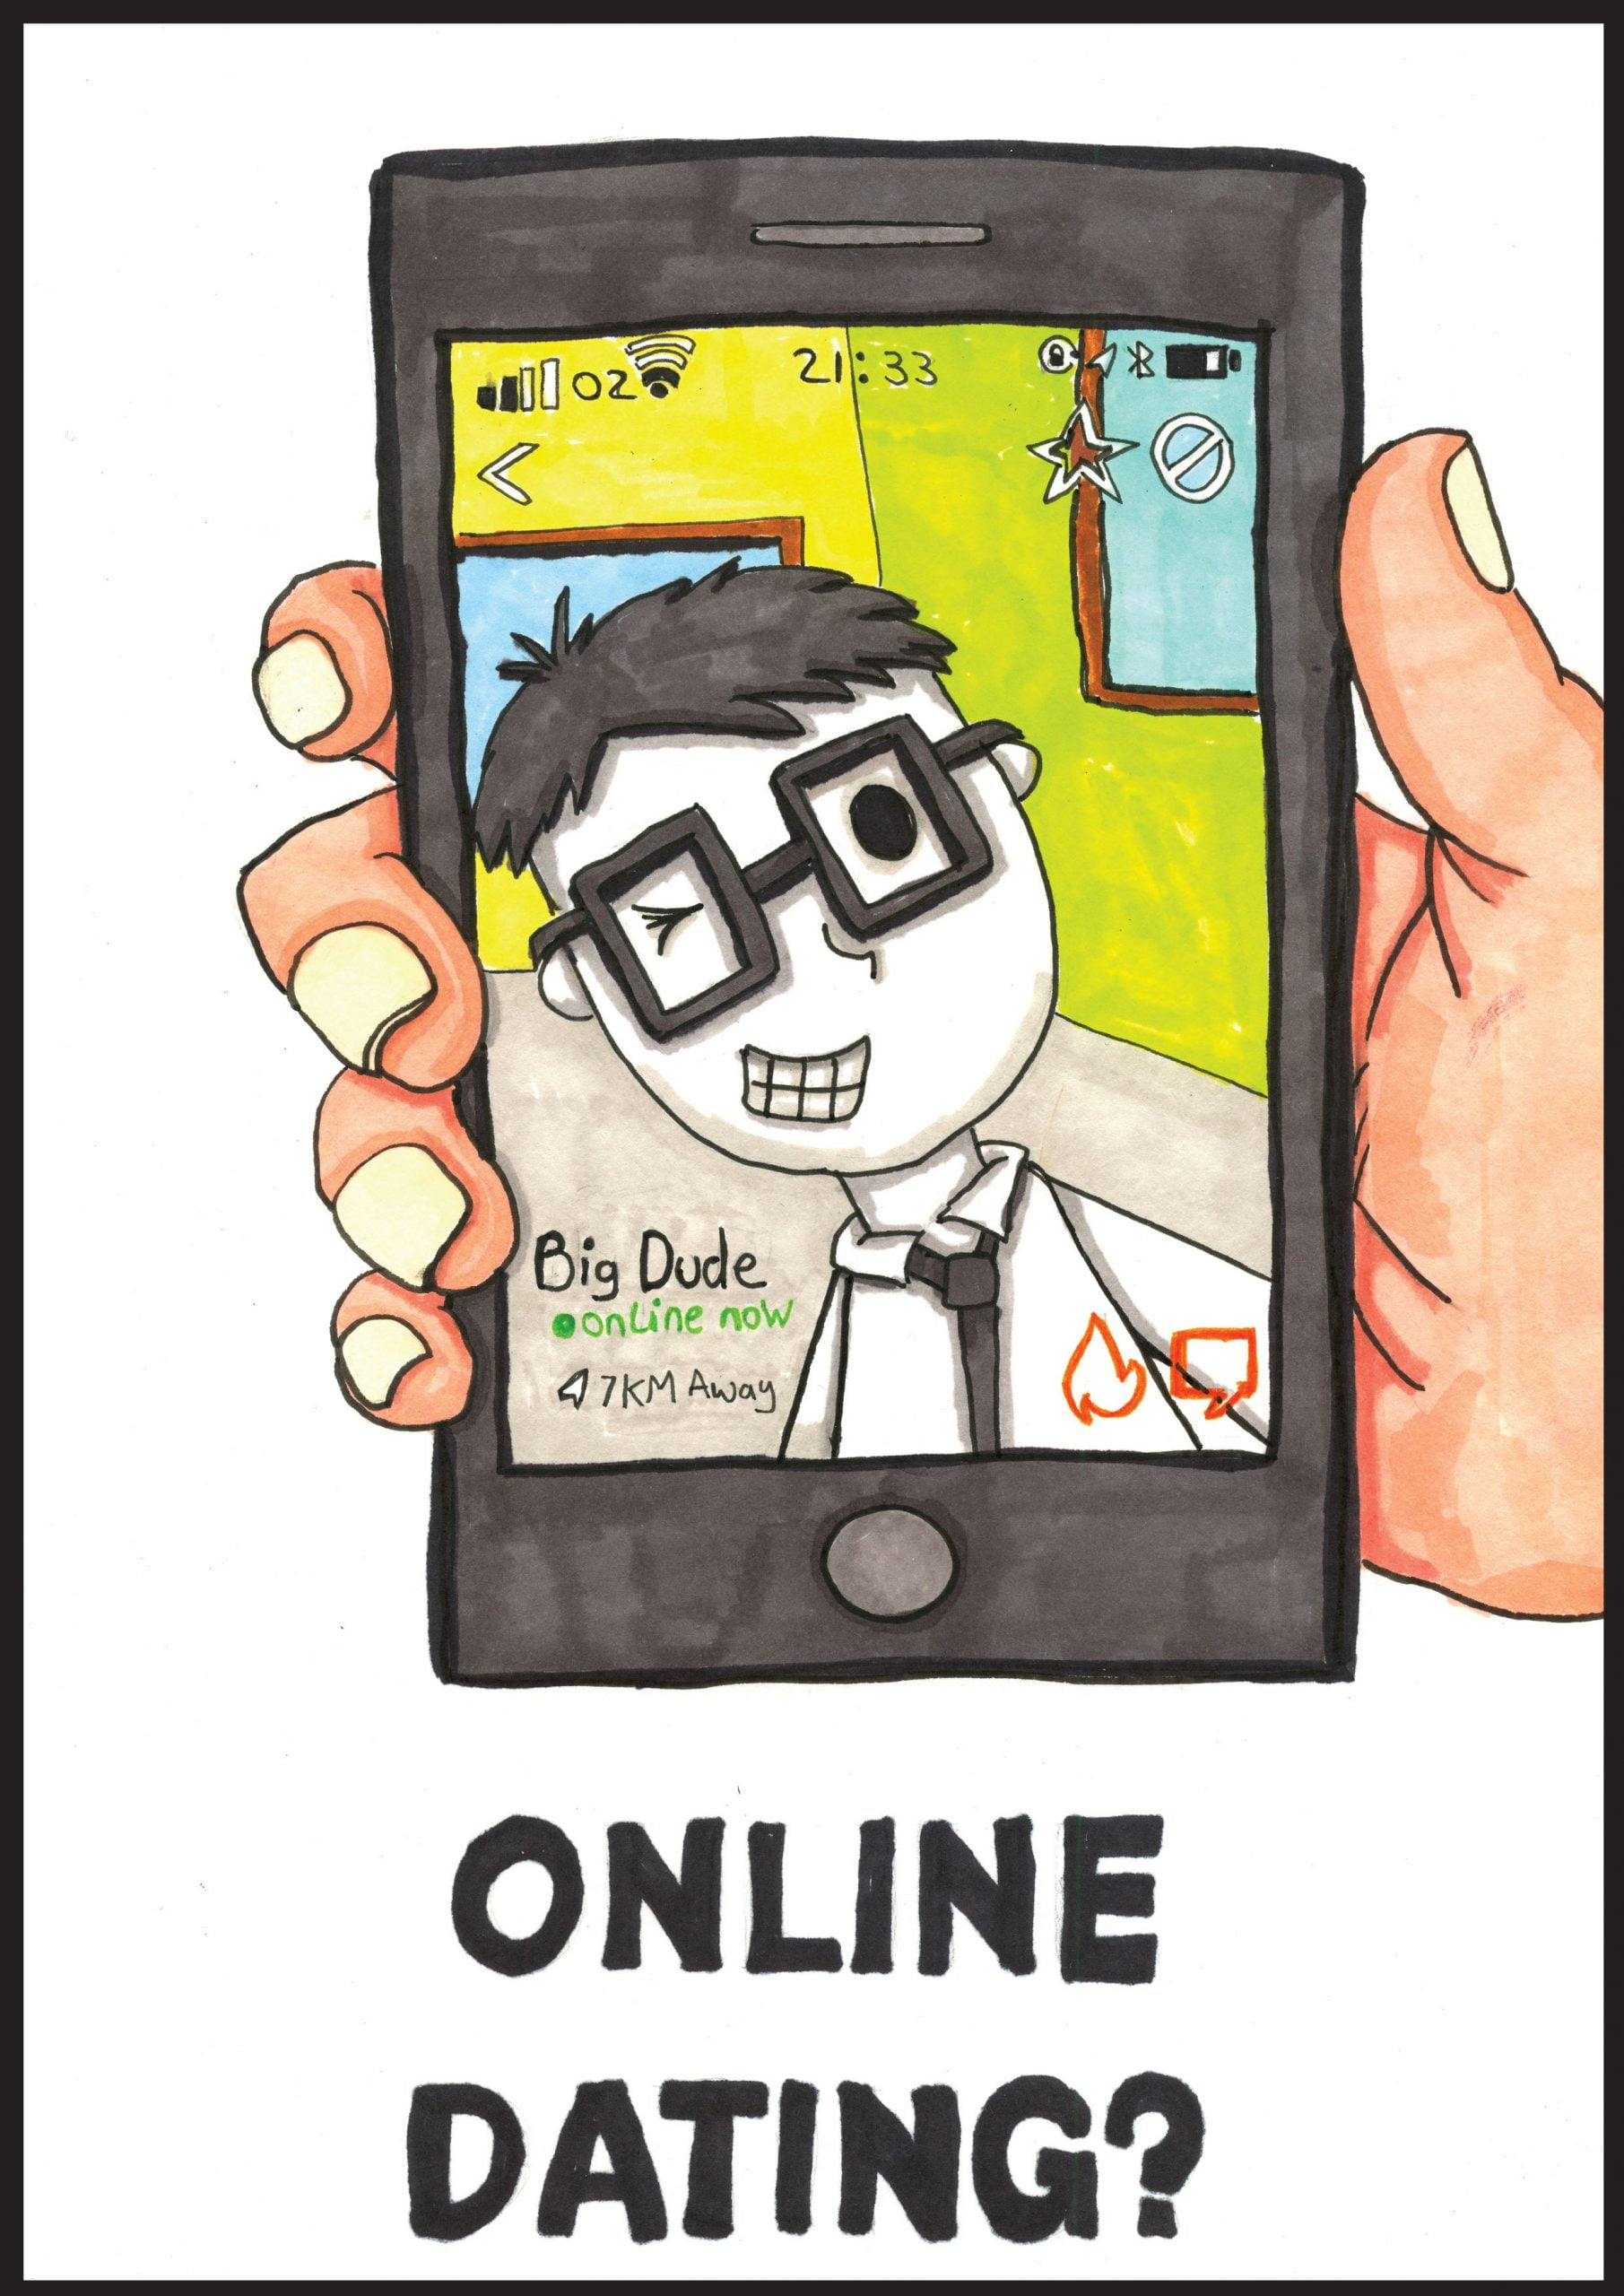 """A hand holding a mobile phone fills the page. On the screen is a figure with short black hair and glasses in a shirt winking with a smile. The wall behind them is green. At the bottom of the screen reads: """"Big Dude, online now, 7km away."""" In thick black writing below the mobile phone reads: """"Online Dating?"""""""